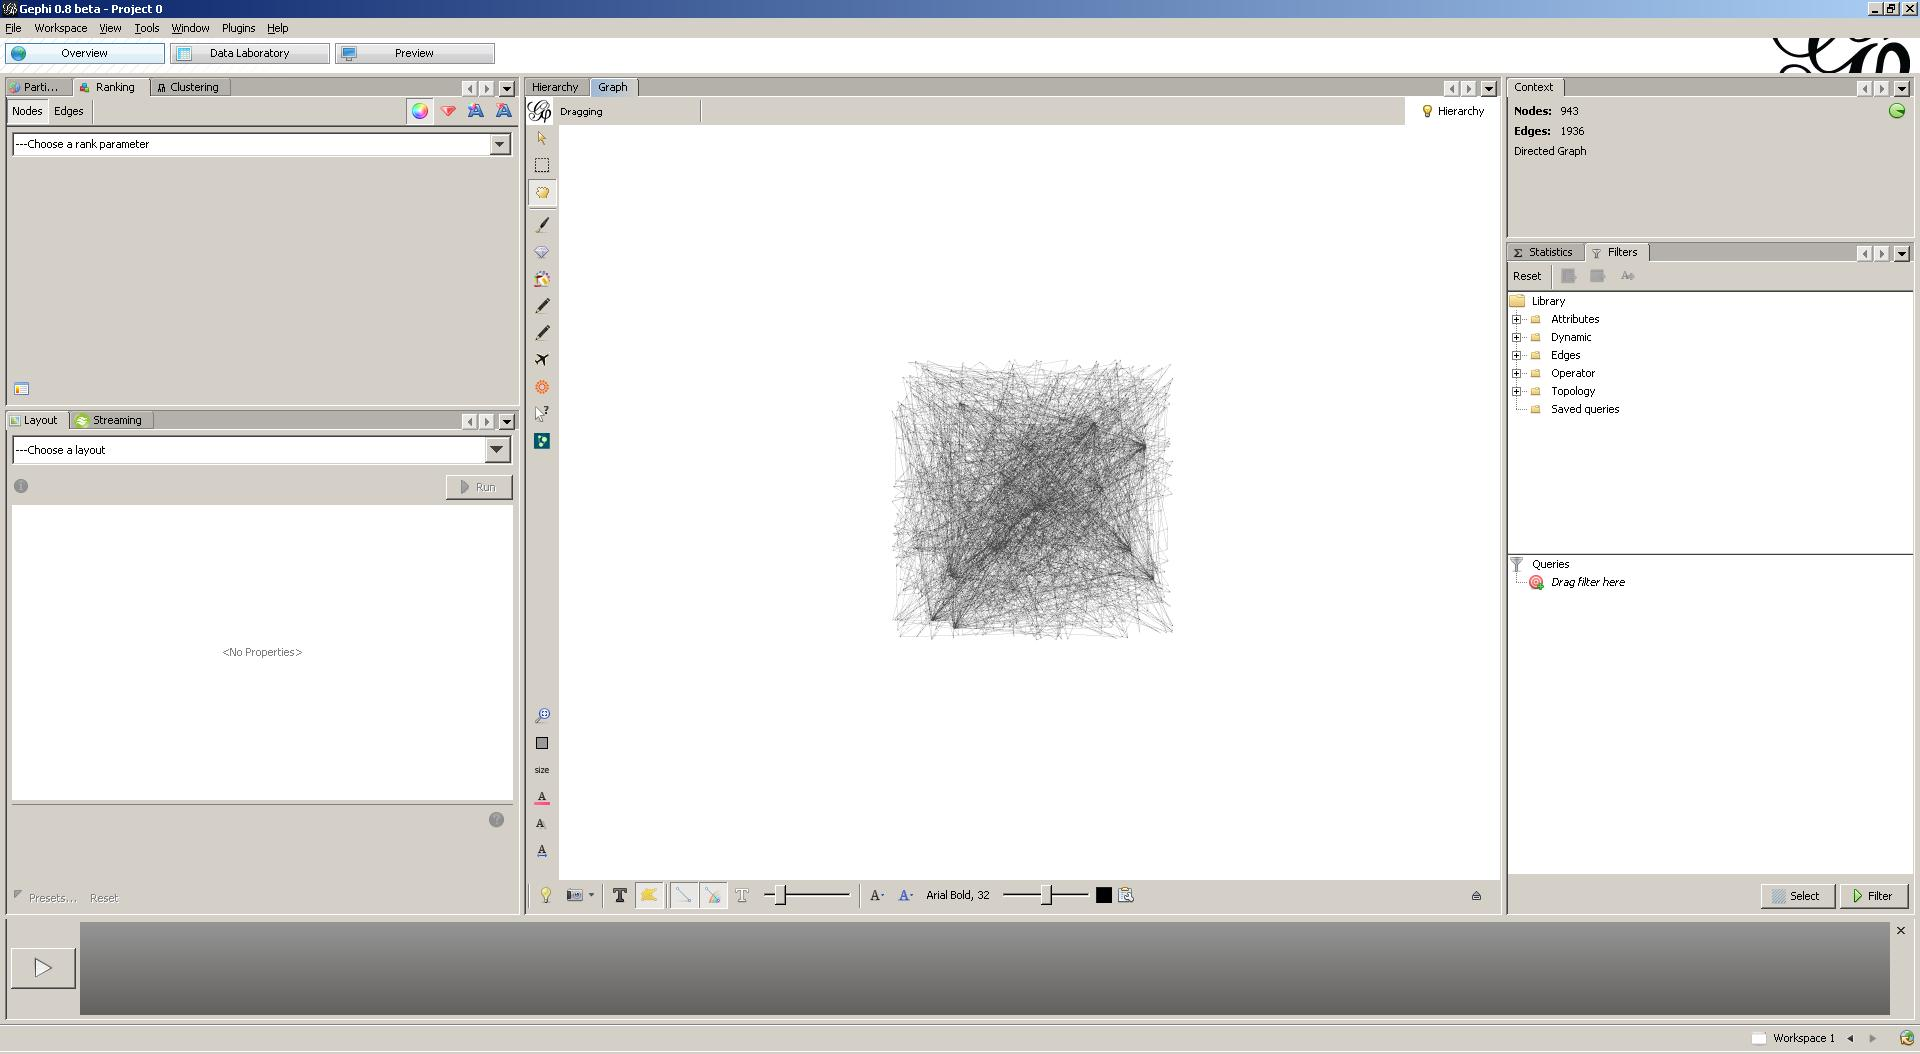 gephi